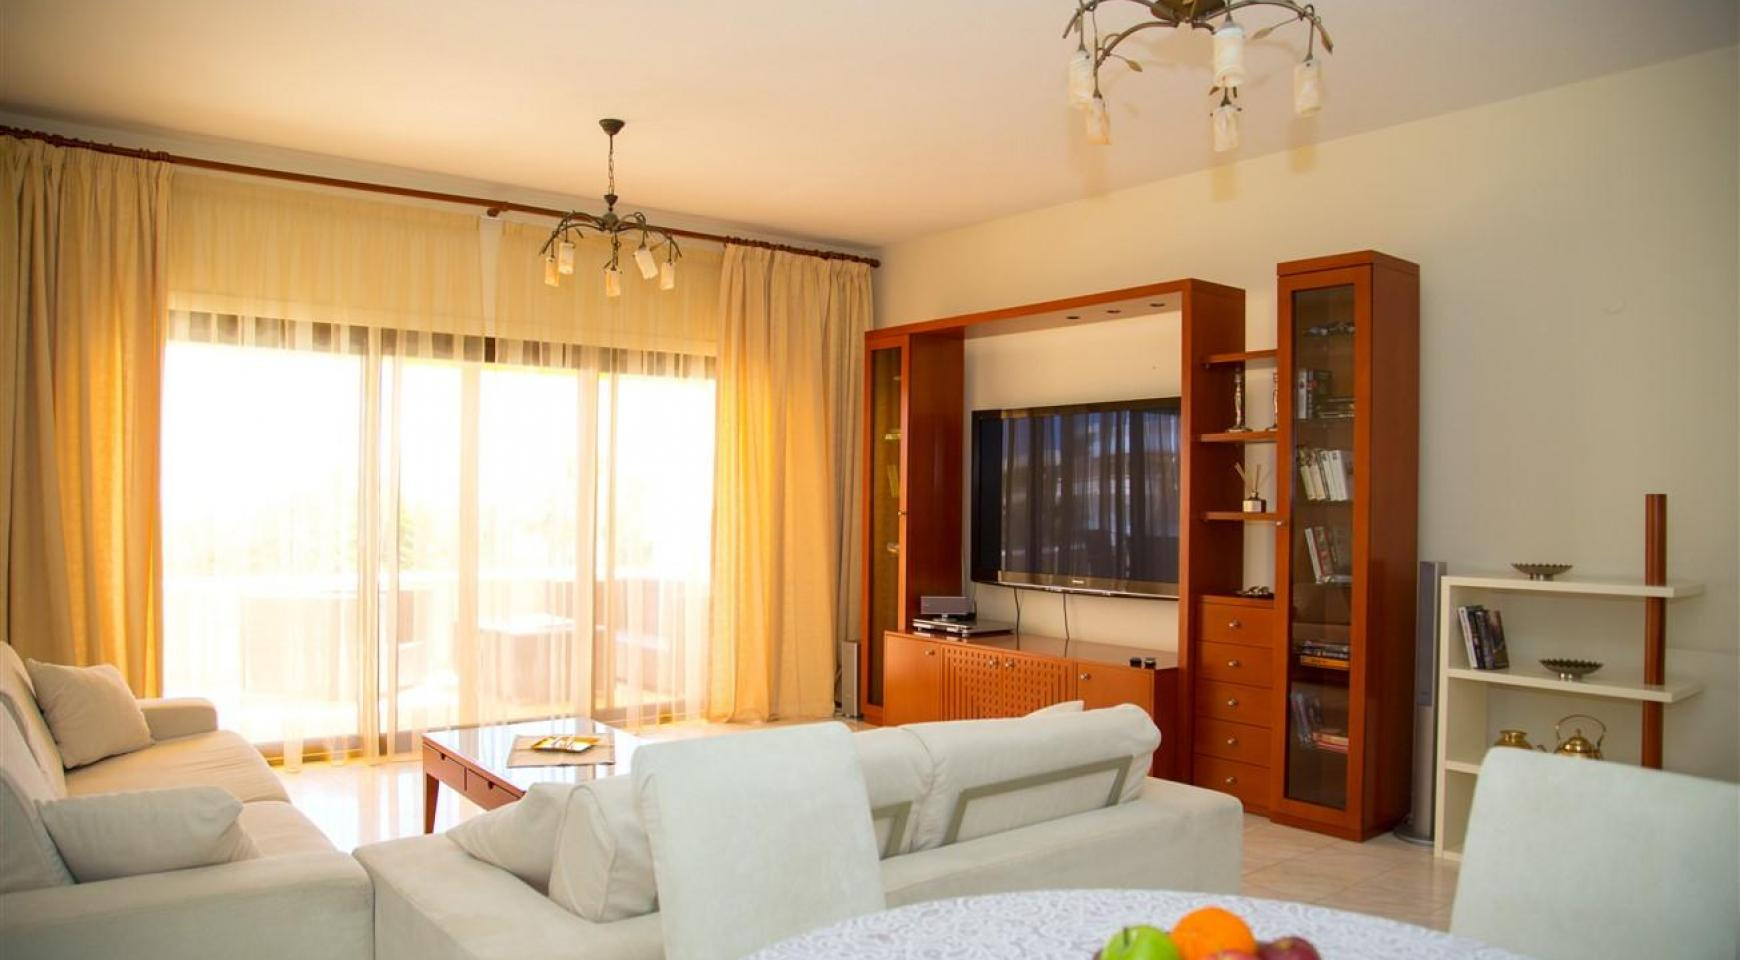 Luxury 3 Bedroom Apartment Thera 102 by the Sea - 30